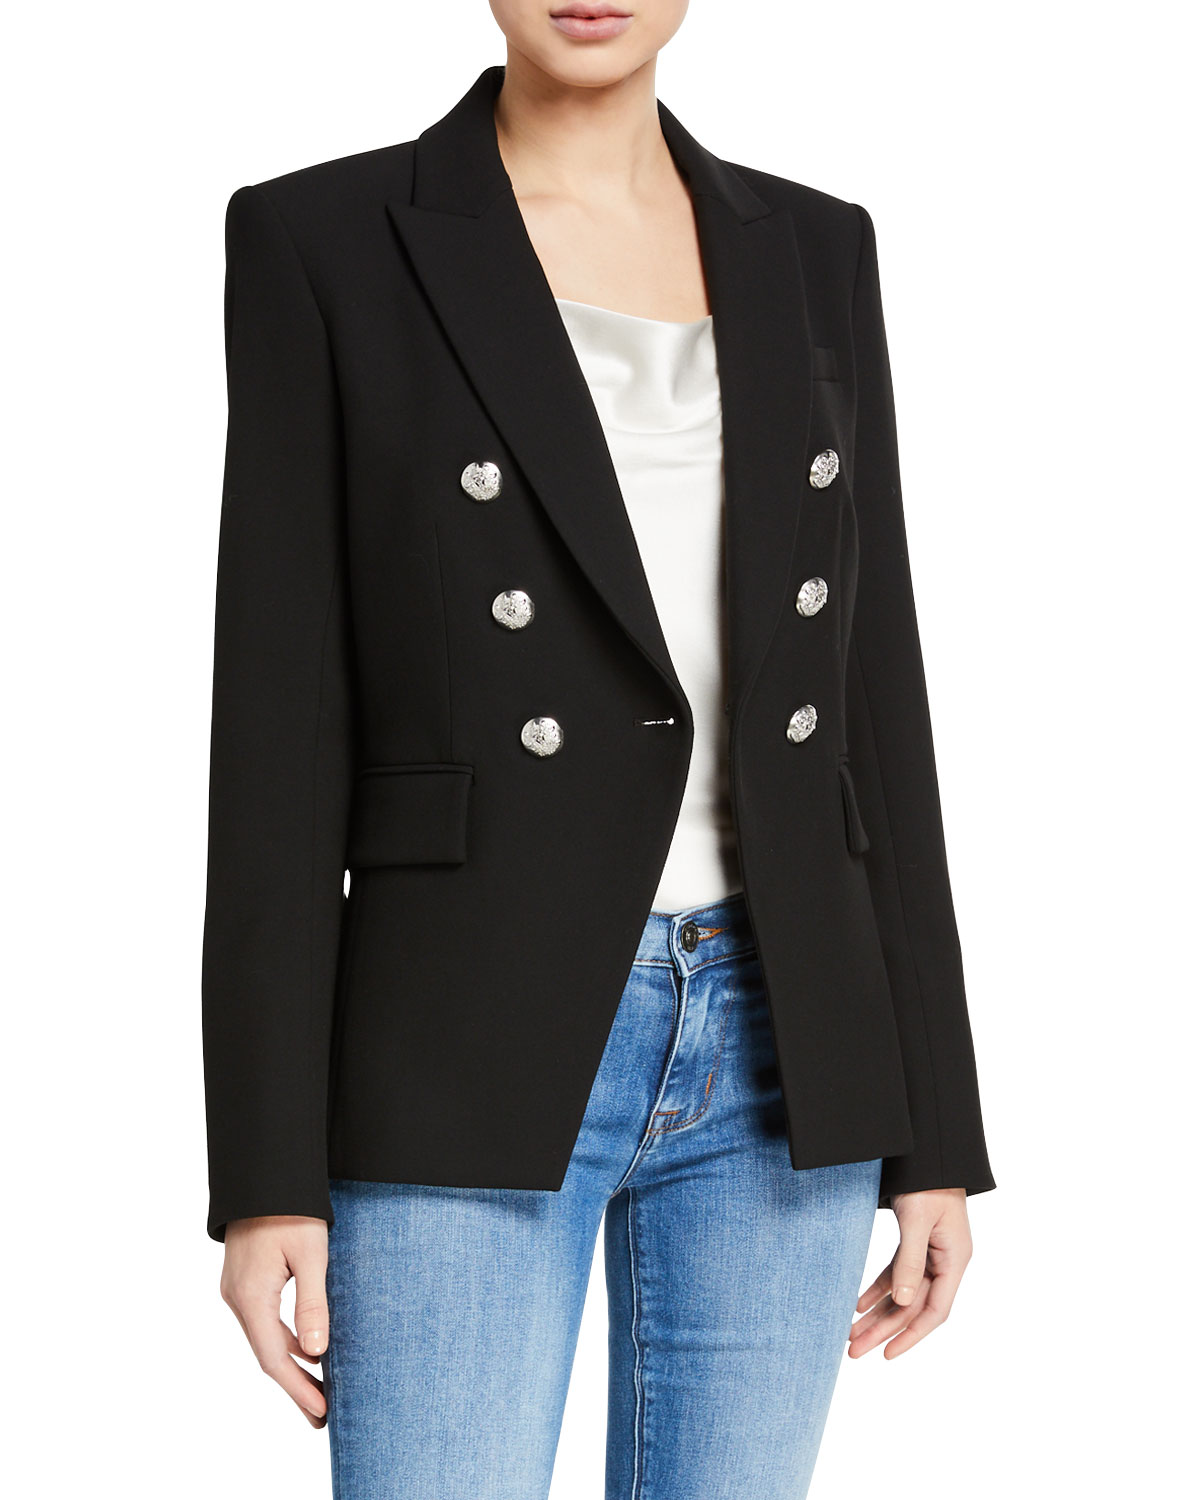 Veronica Beard Jackets MILLER DICKEY JACKET